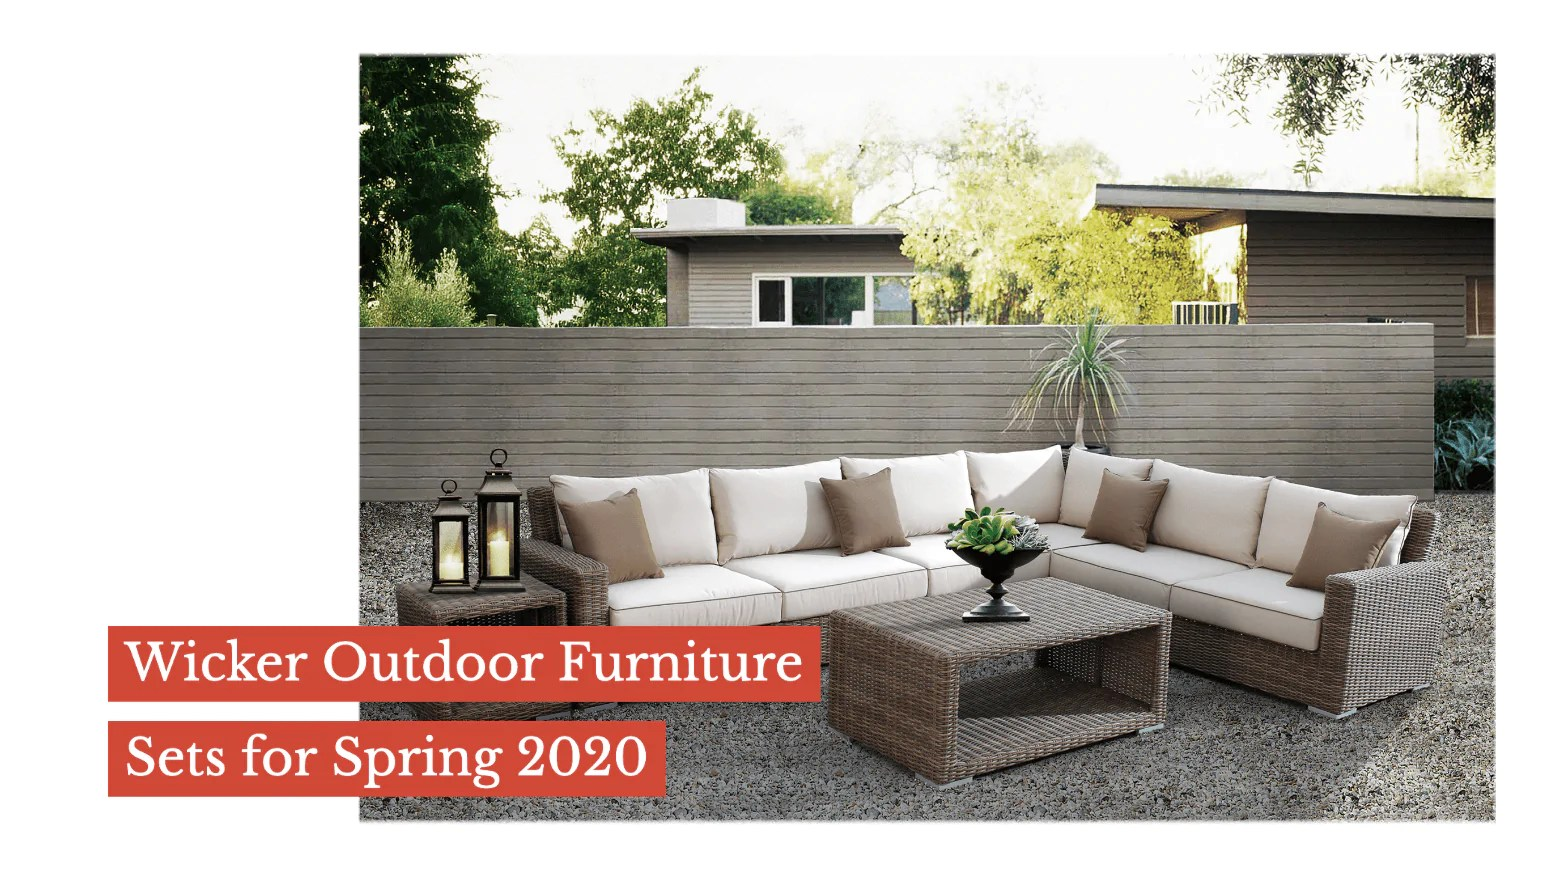 wicker outdoor furniture sets for